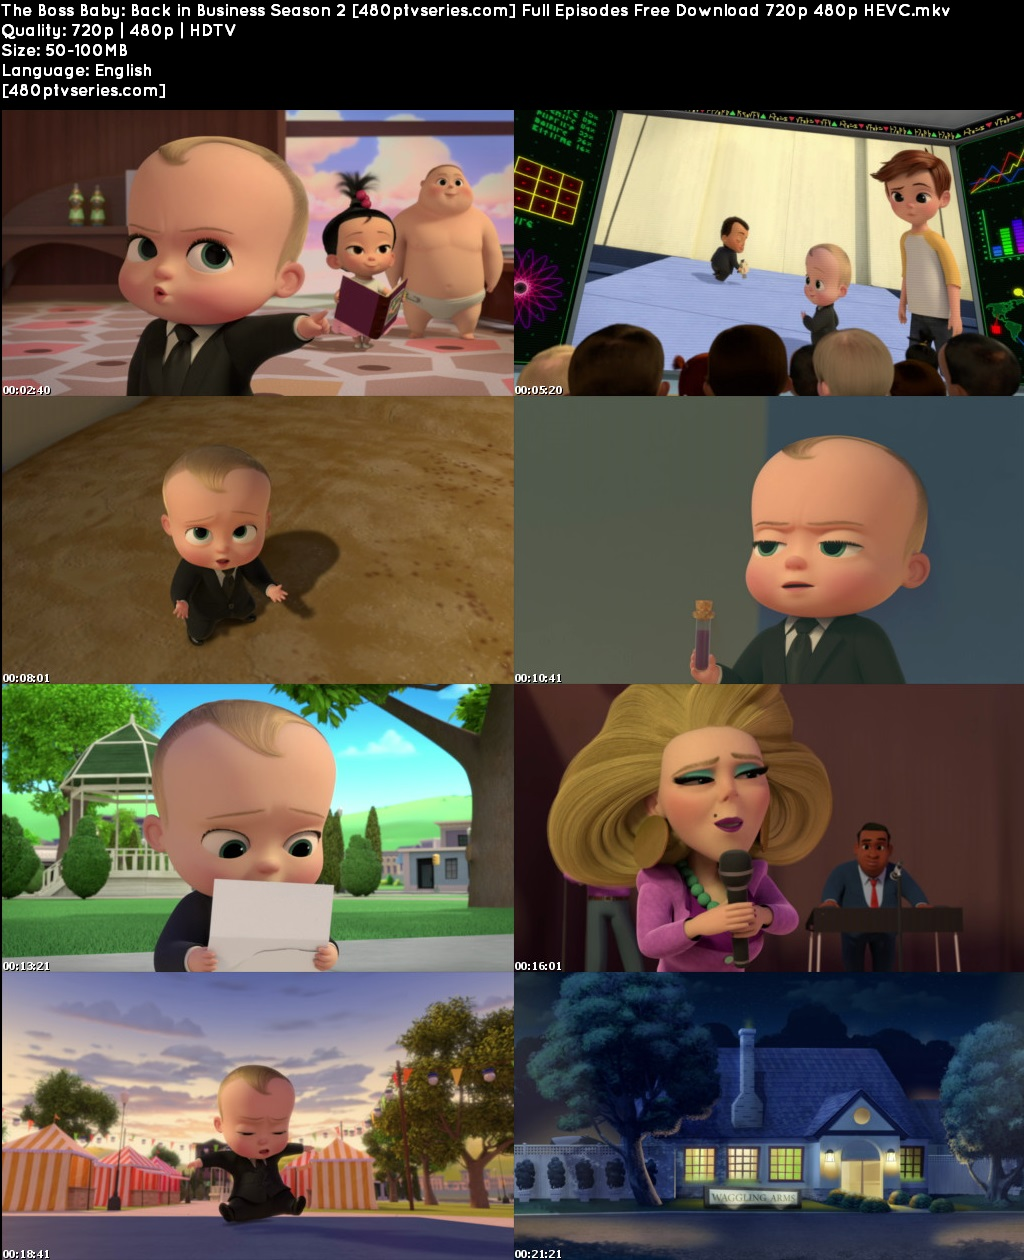 the boss baby download in hindi 720p